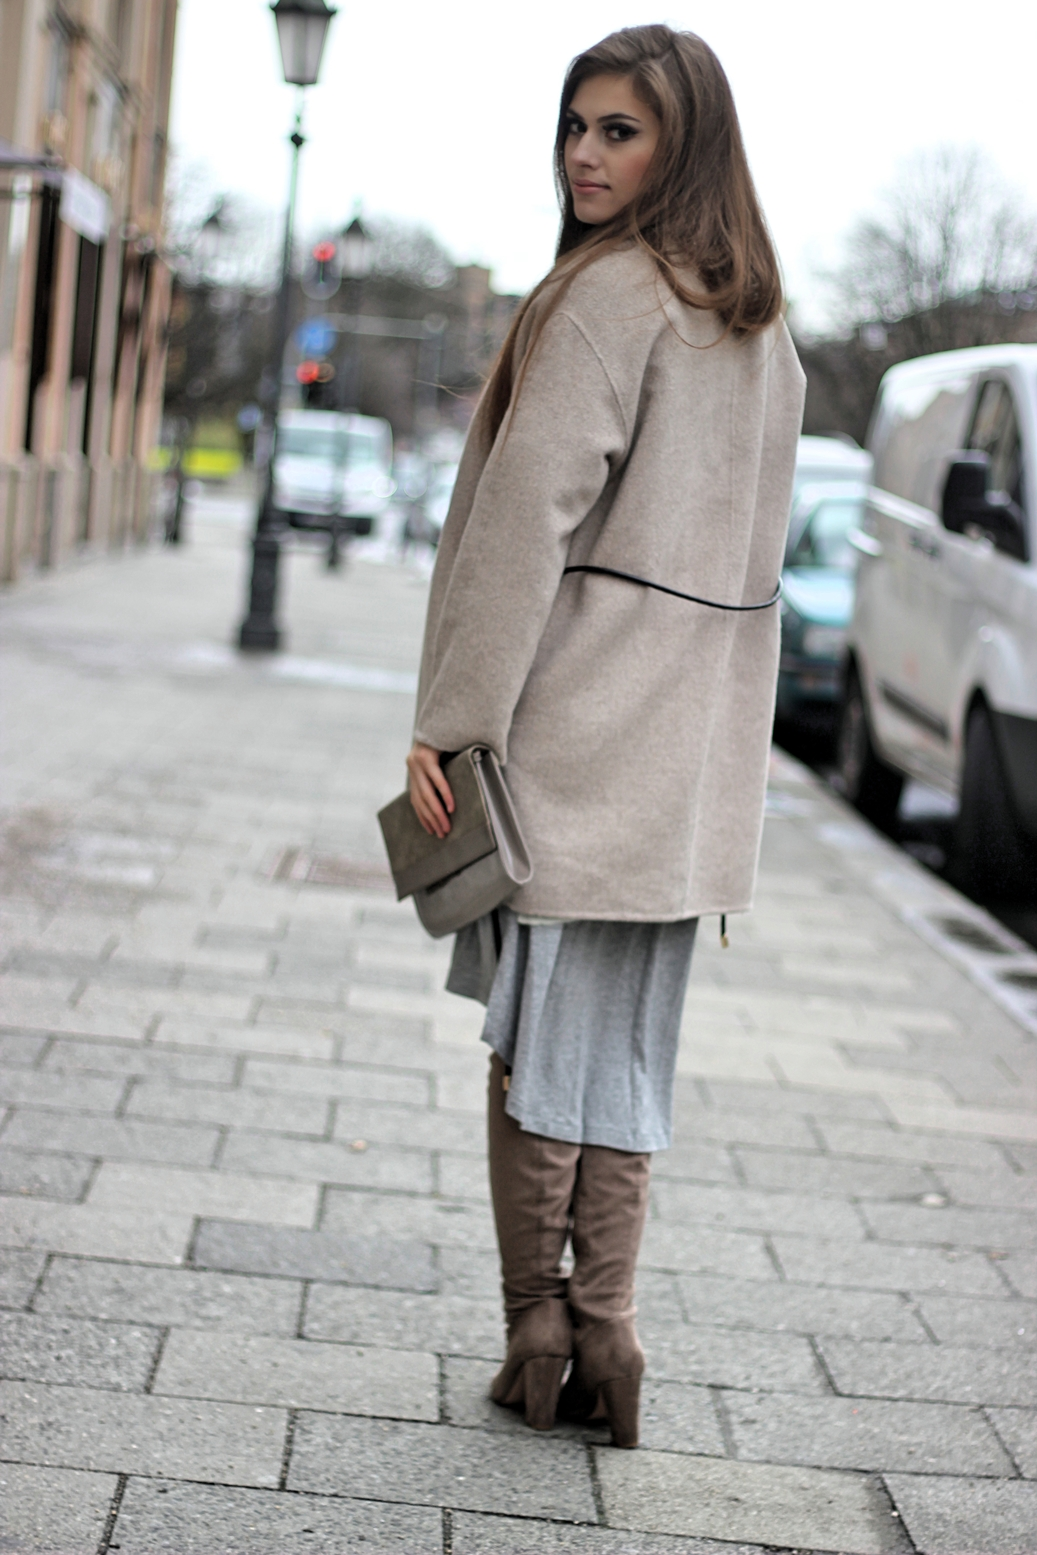 zara-coat-fashion-blog-street-style-asos-grey-layering